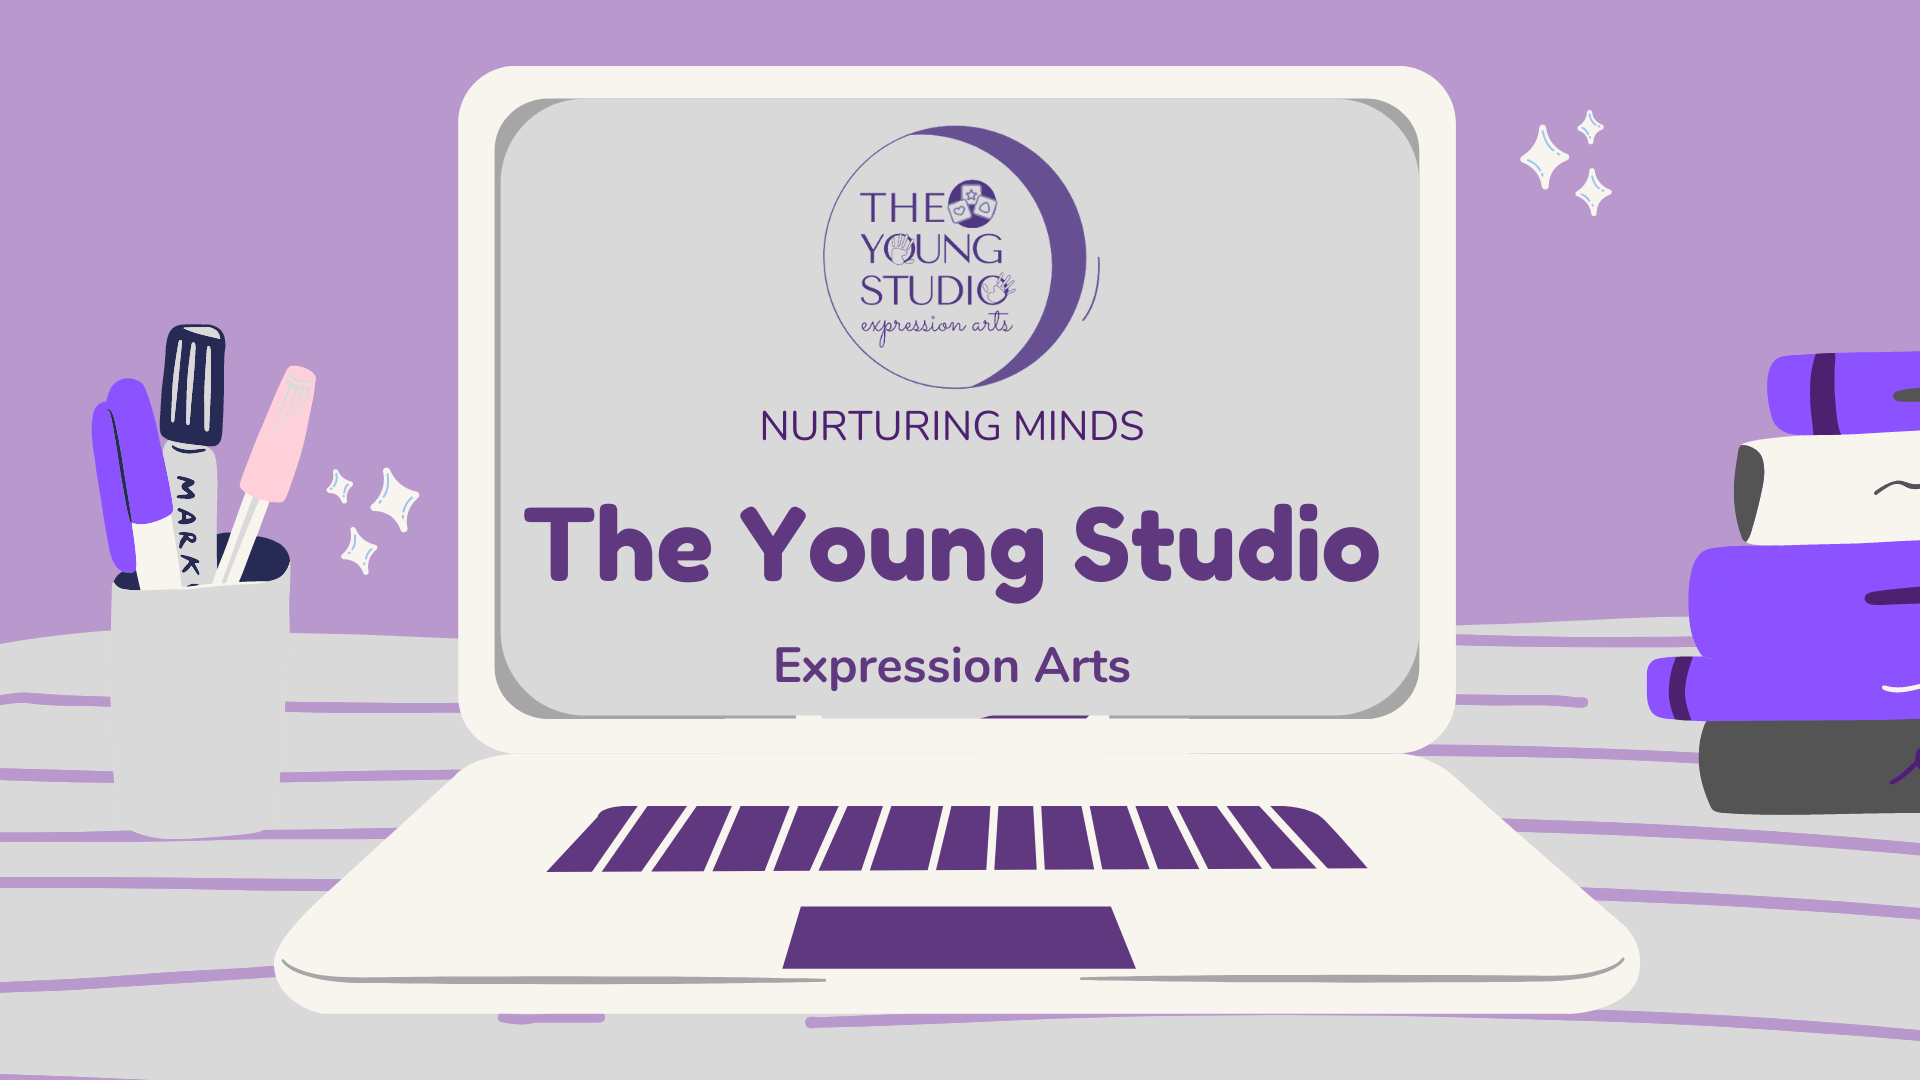 Tys collab proposal - The Young Studio